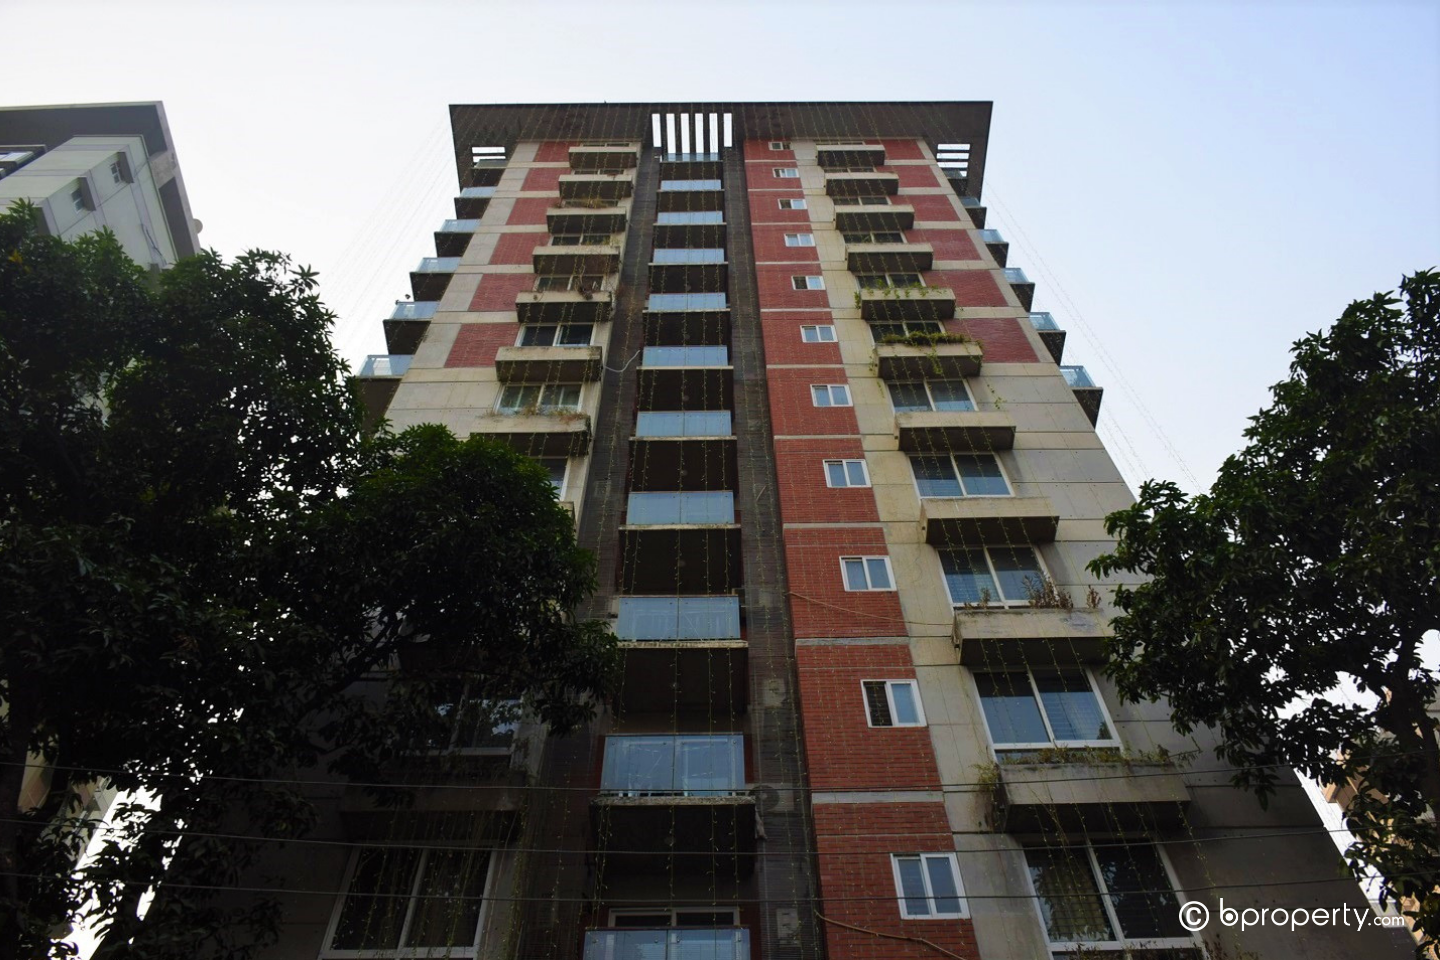 Don't miss your chance to own one of the finest apartments for sale in Banani